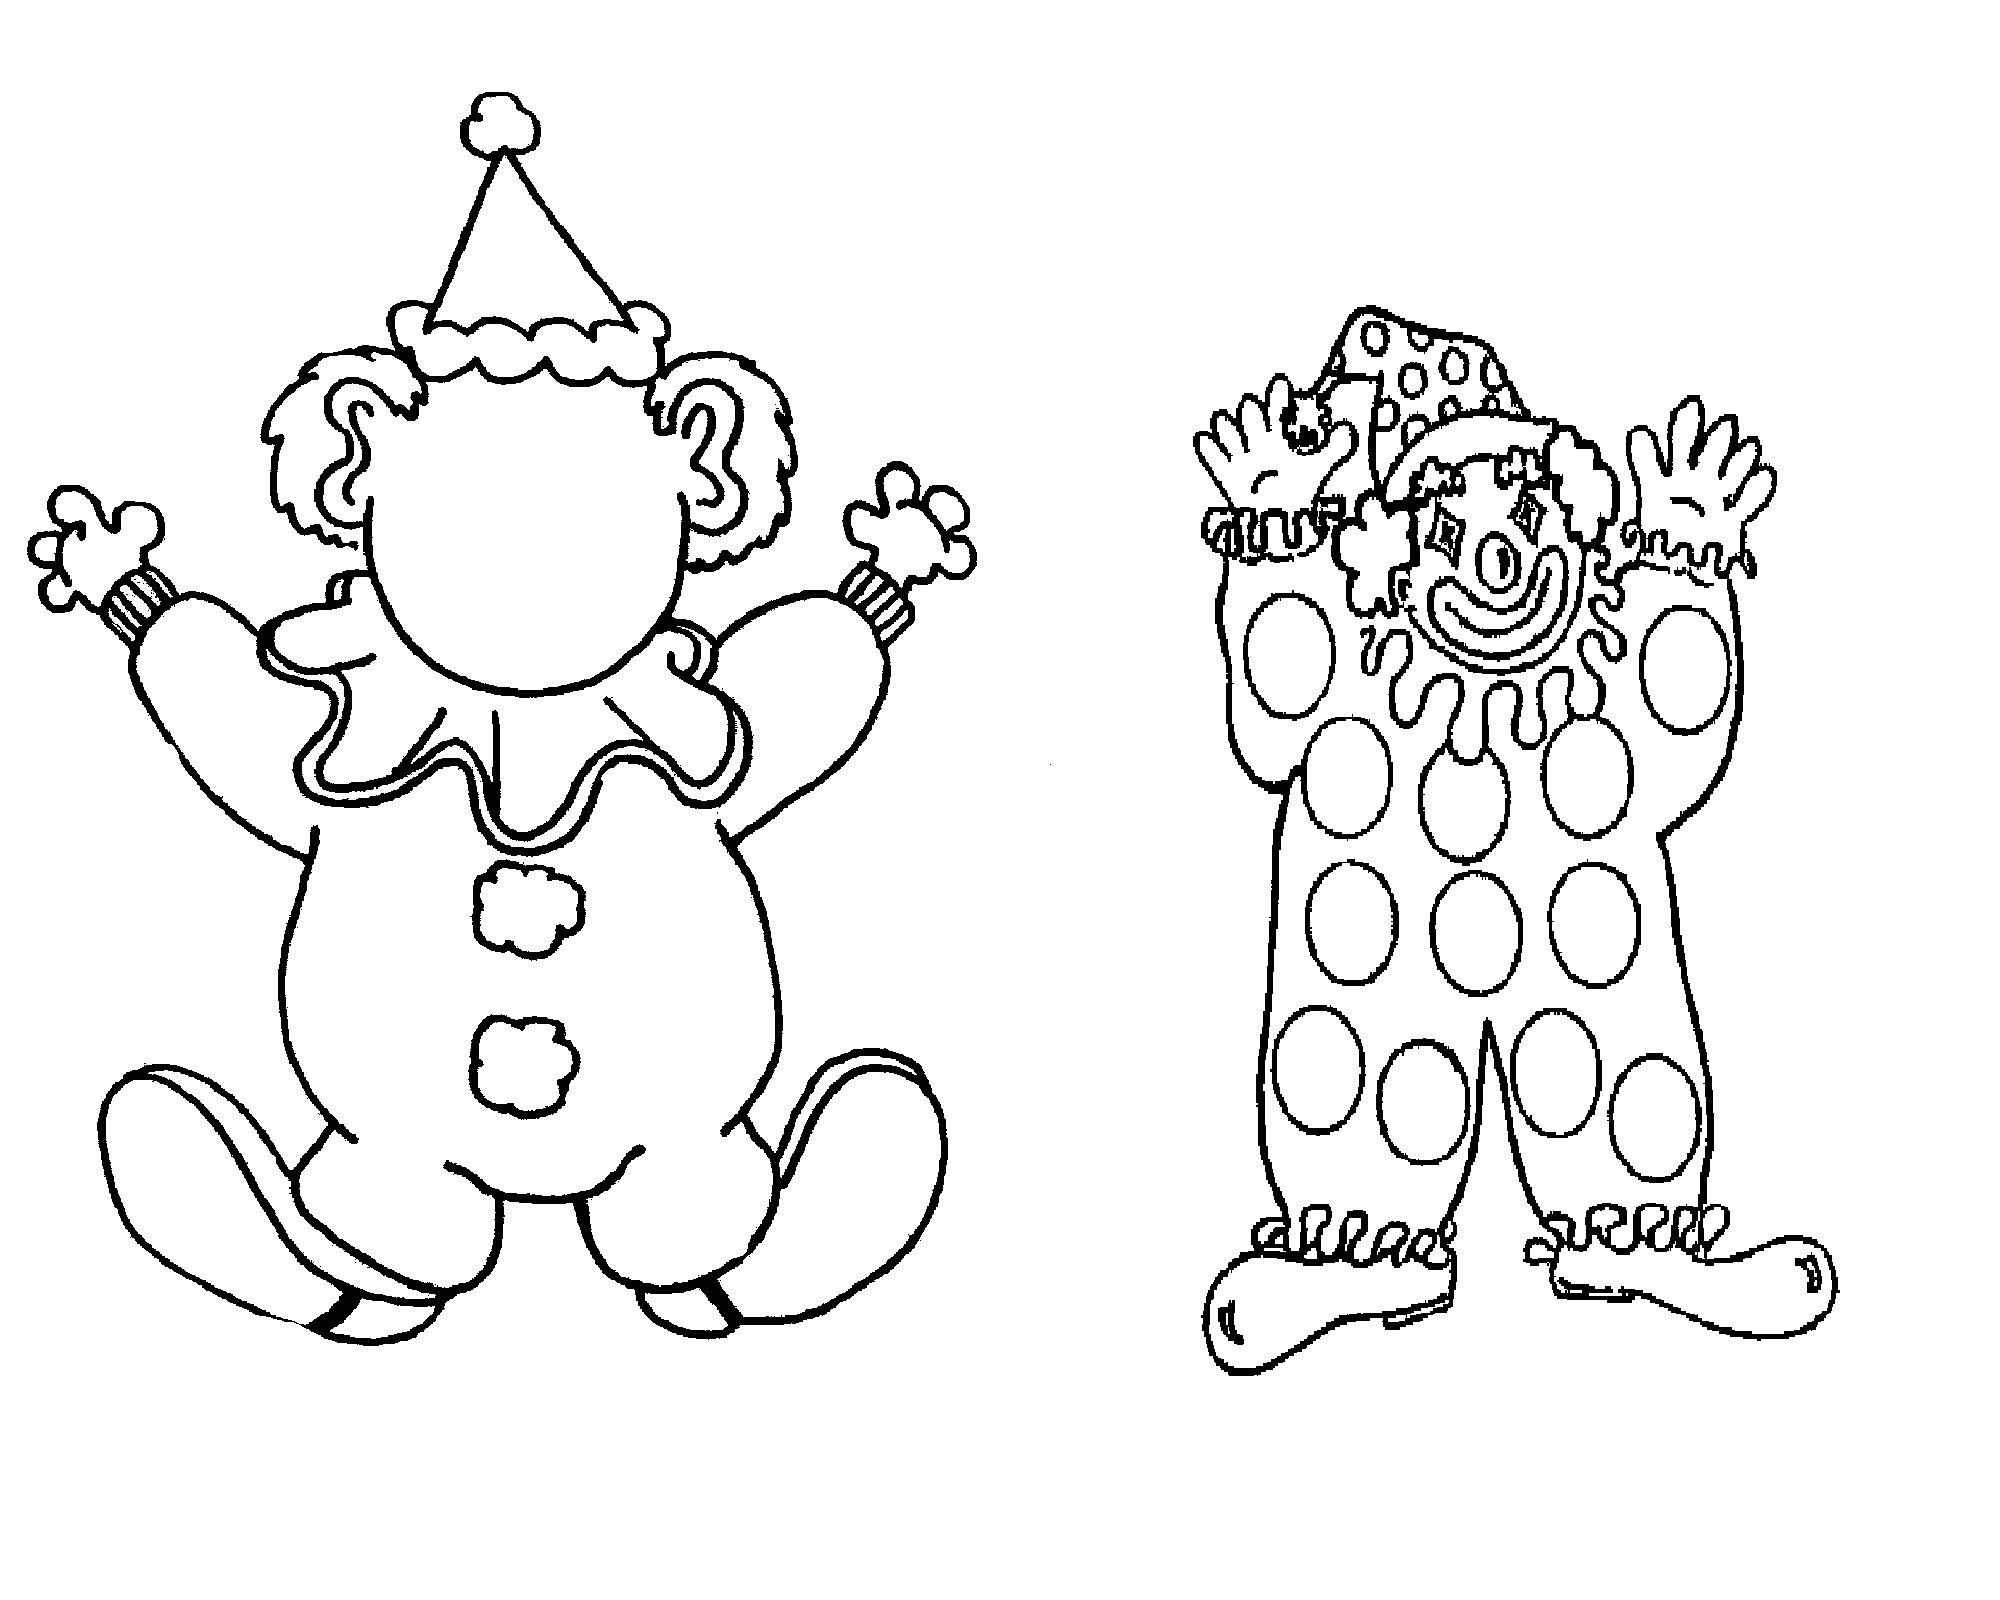 Special pictures coloring unknown. Clown clipart colouring page banner library